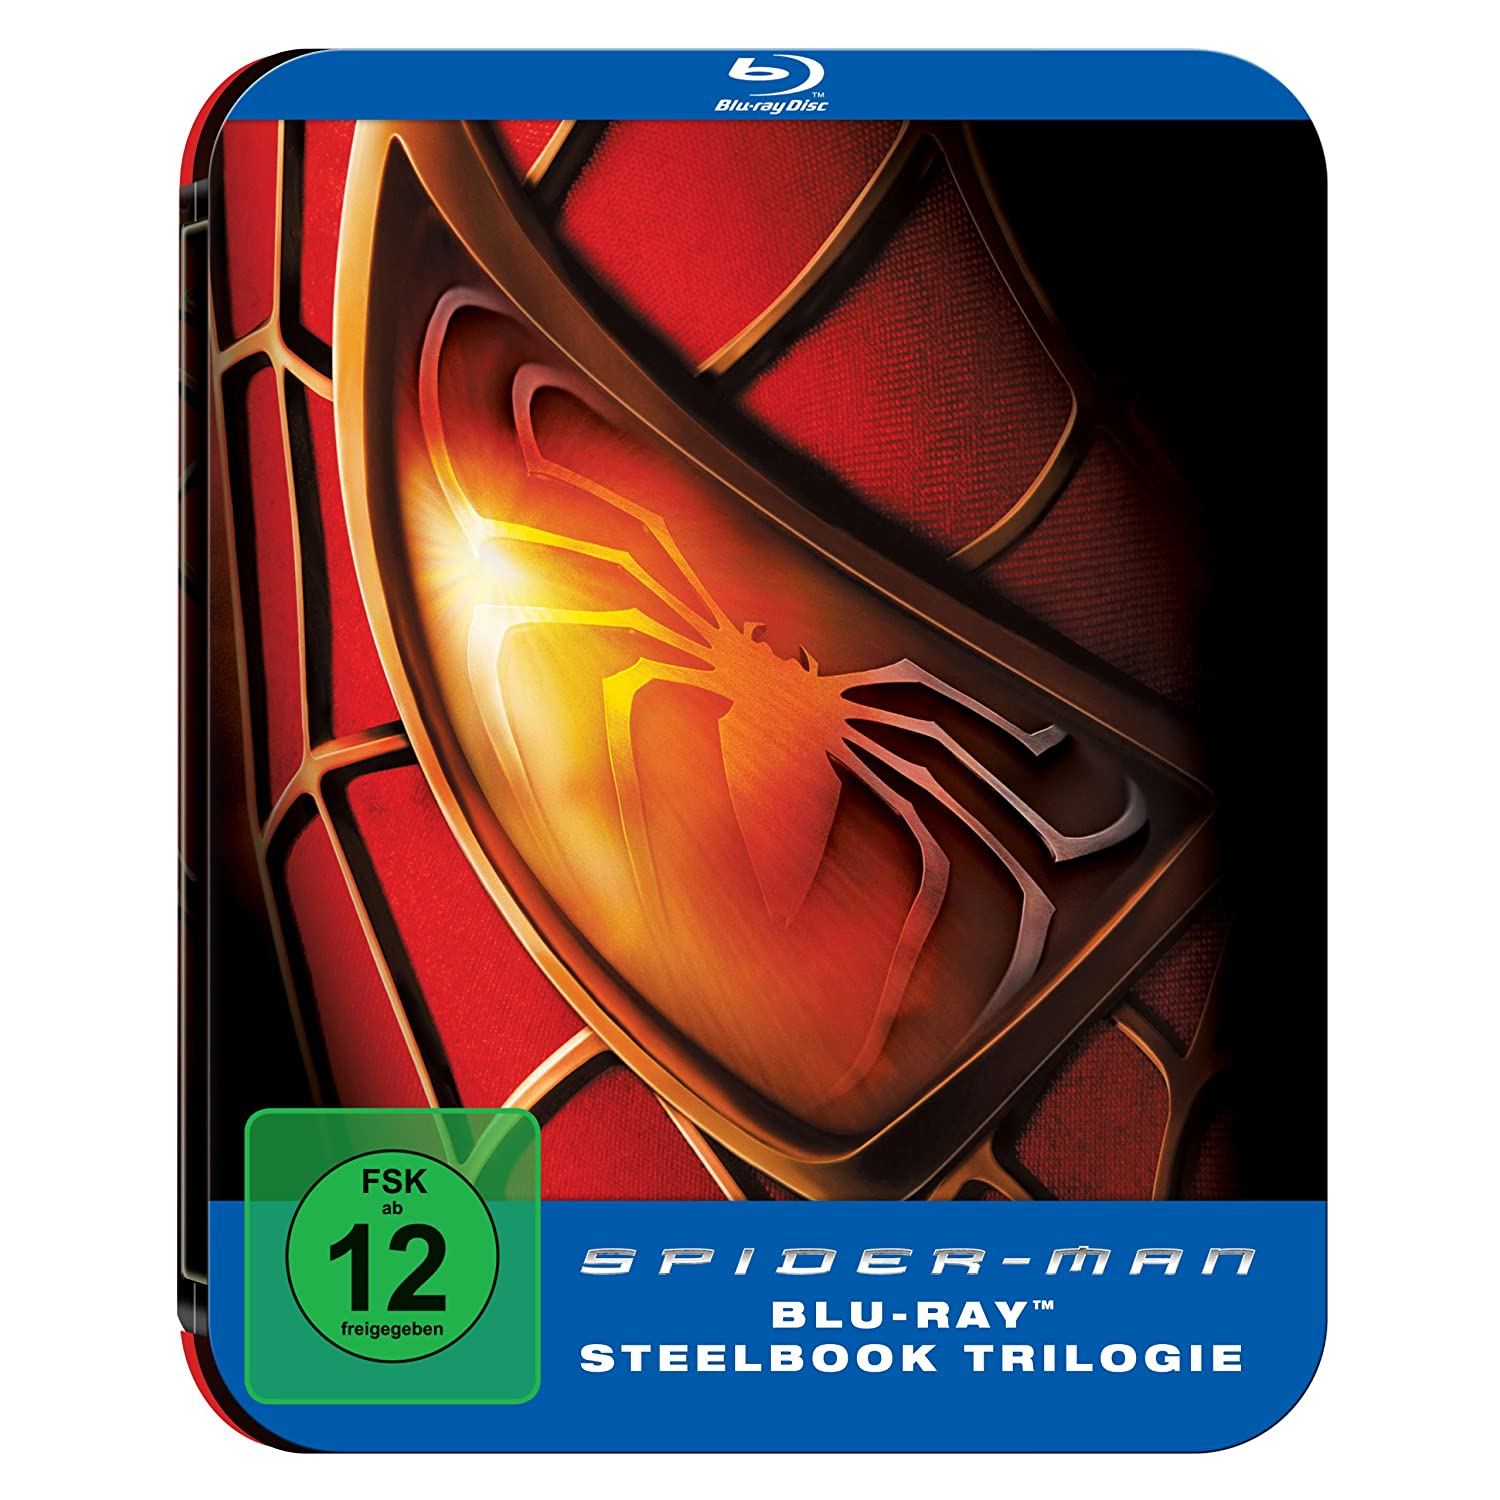 Spiderman Steelbook